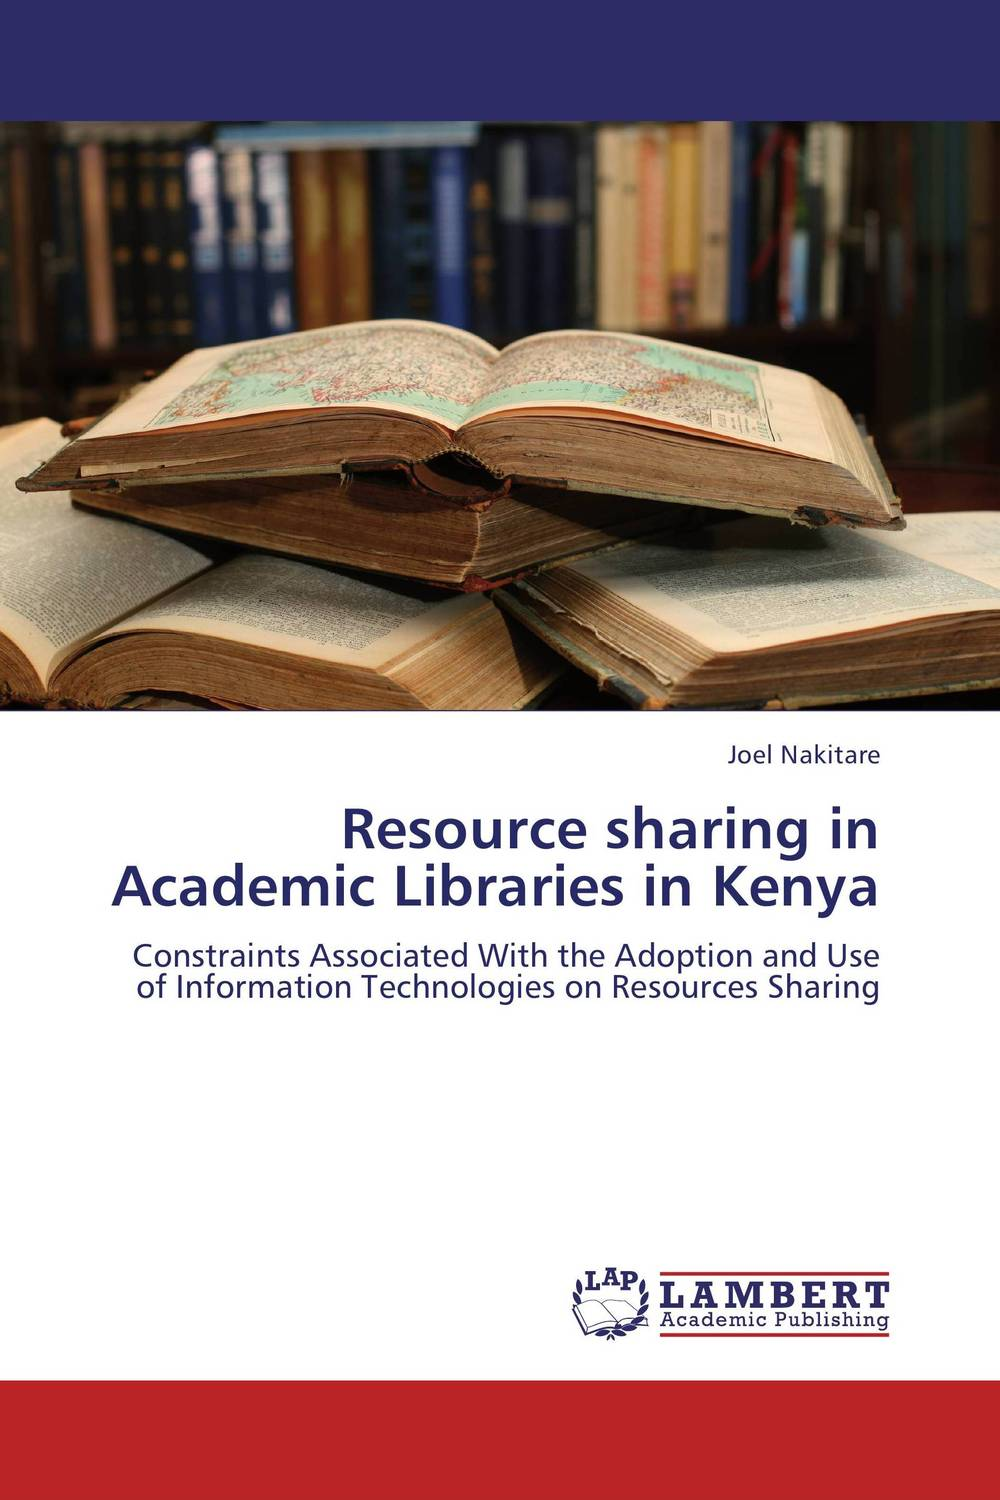 купить Resource sharing in Academic Libraries in Kenya недорого